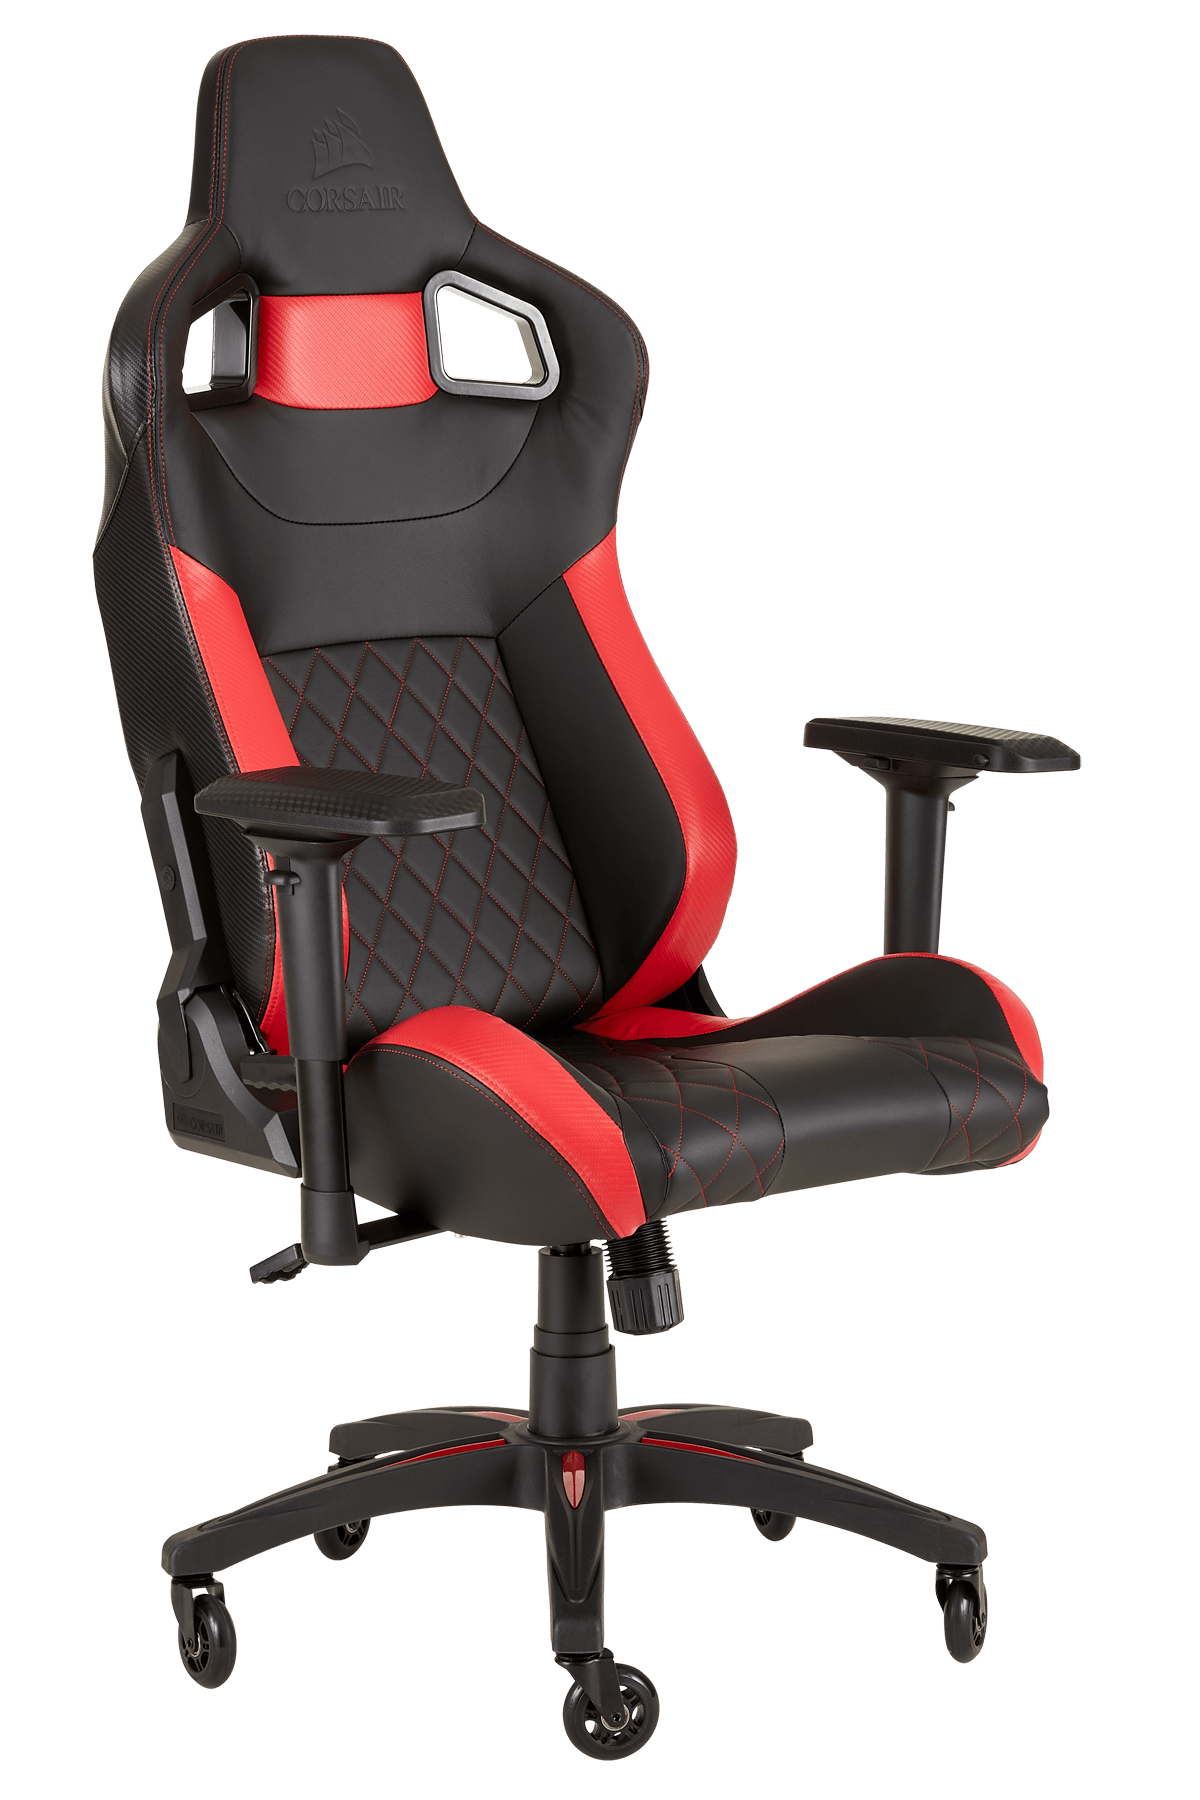 SILLA GAMING  CORSAIR T1 RACE BLACK AND RED